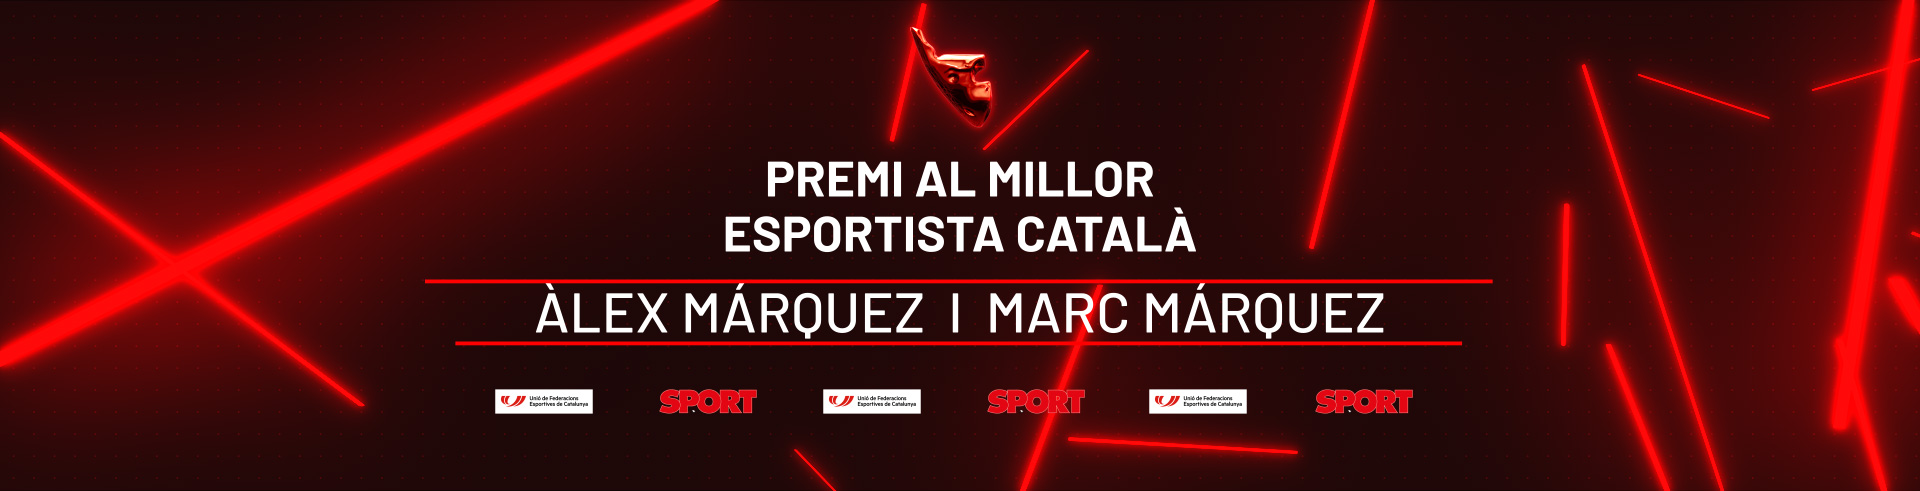 festa-esport-catala-2020-rebrand-motion-graphics-screenshot-06